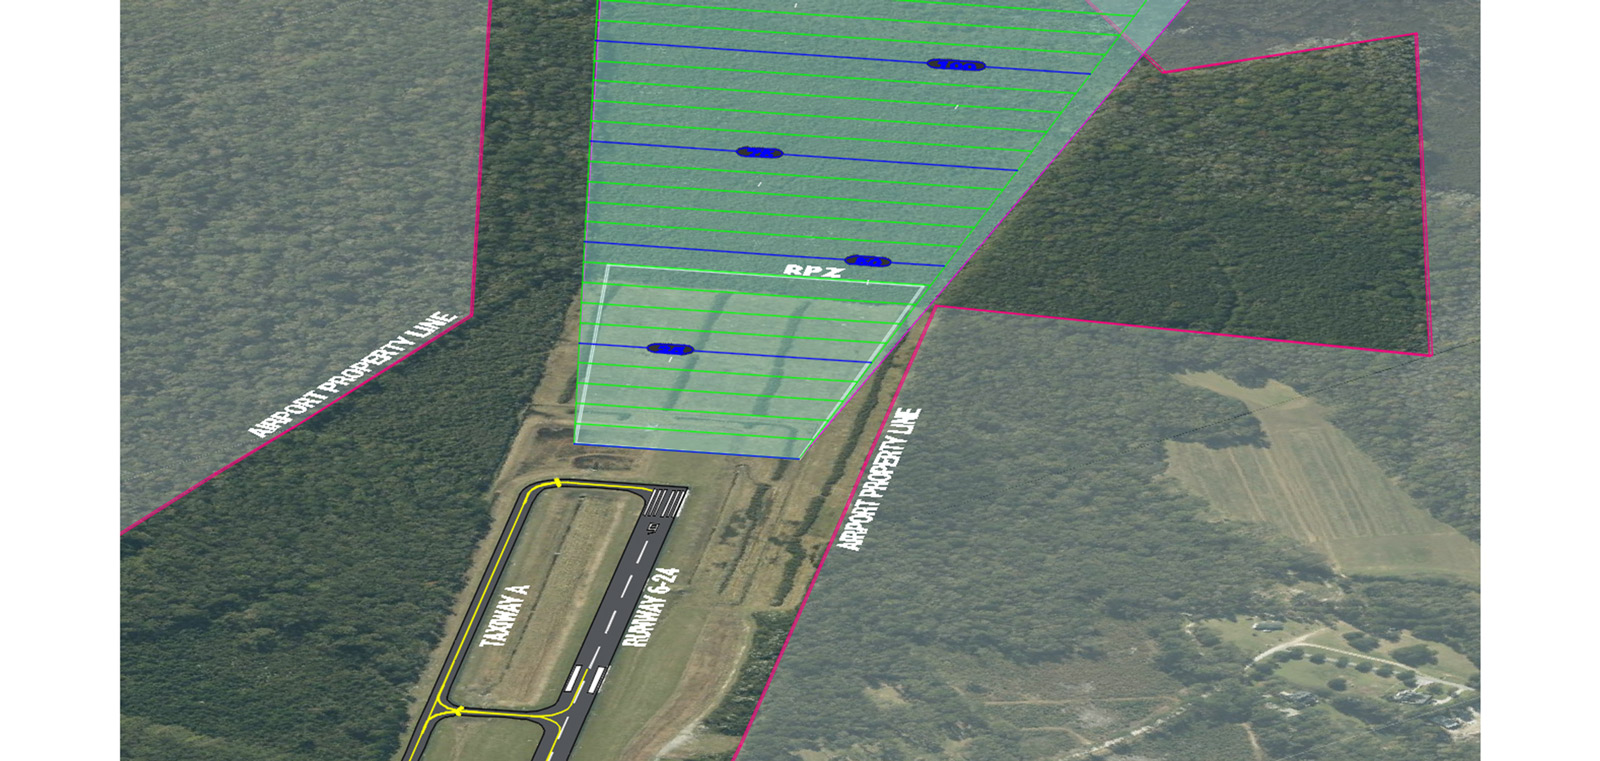 RUNWAY 6 APPROACH OBSTRUCTION REMOVAL SUMMERVILLE AIRPORT (DYB)